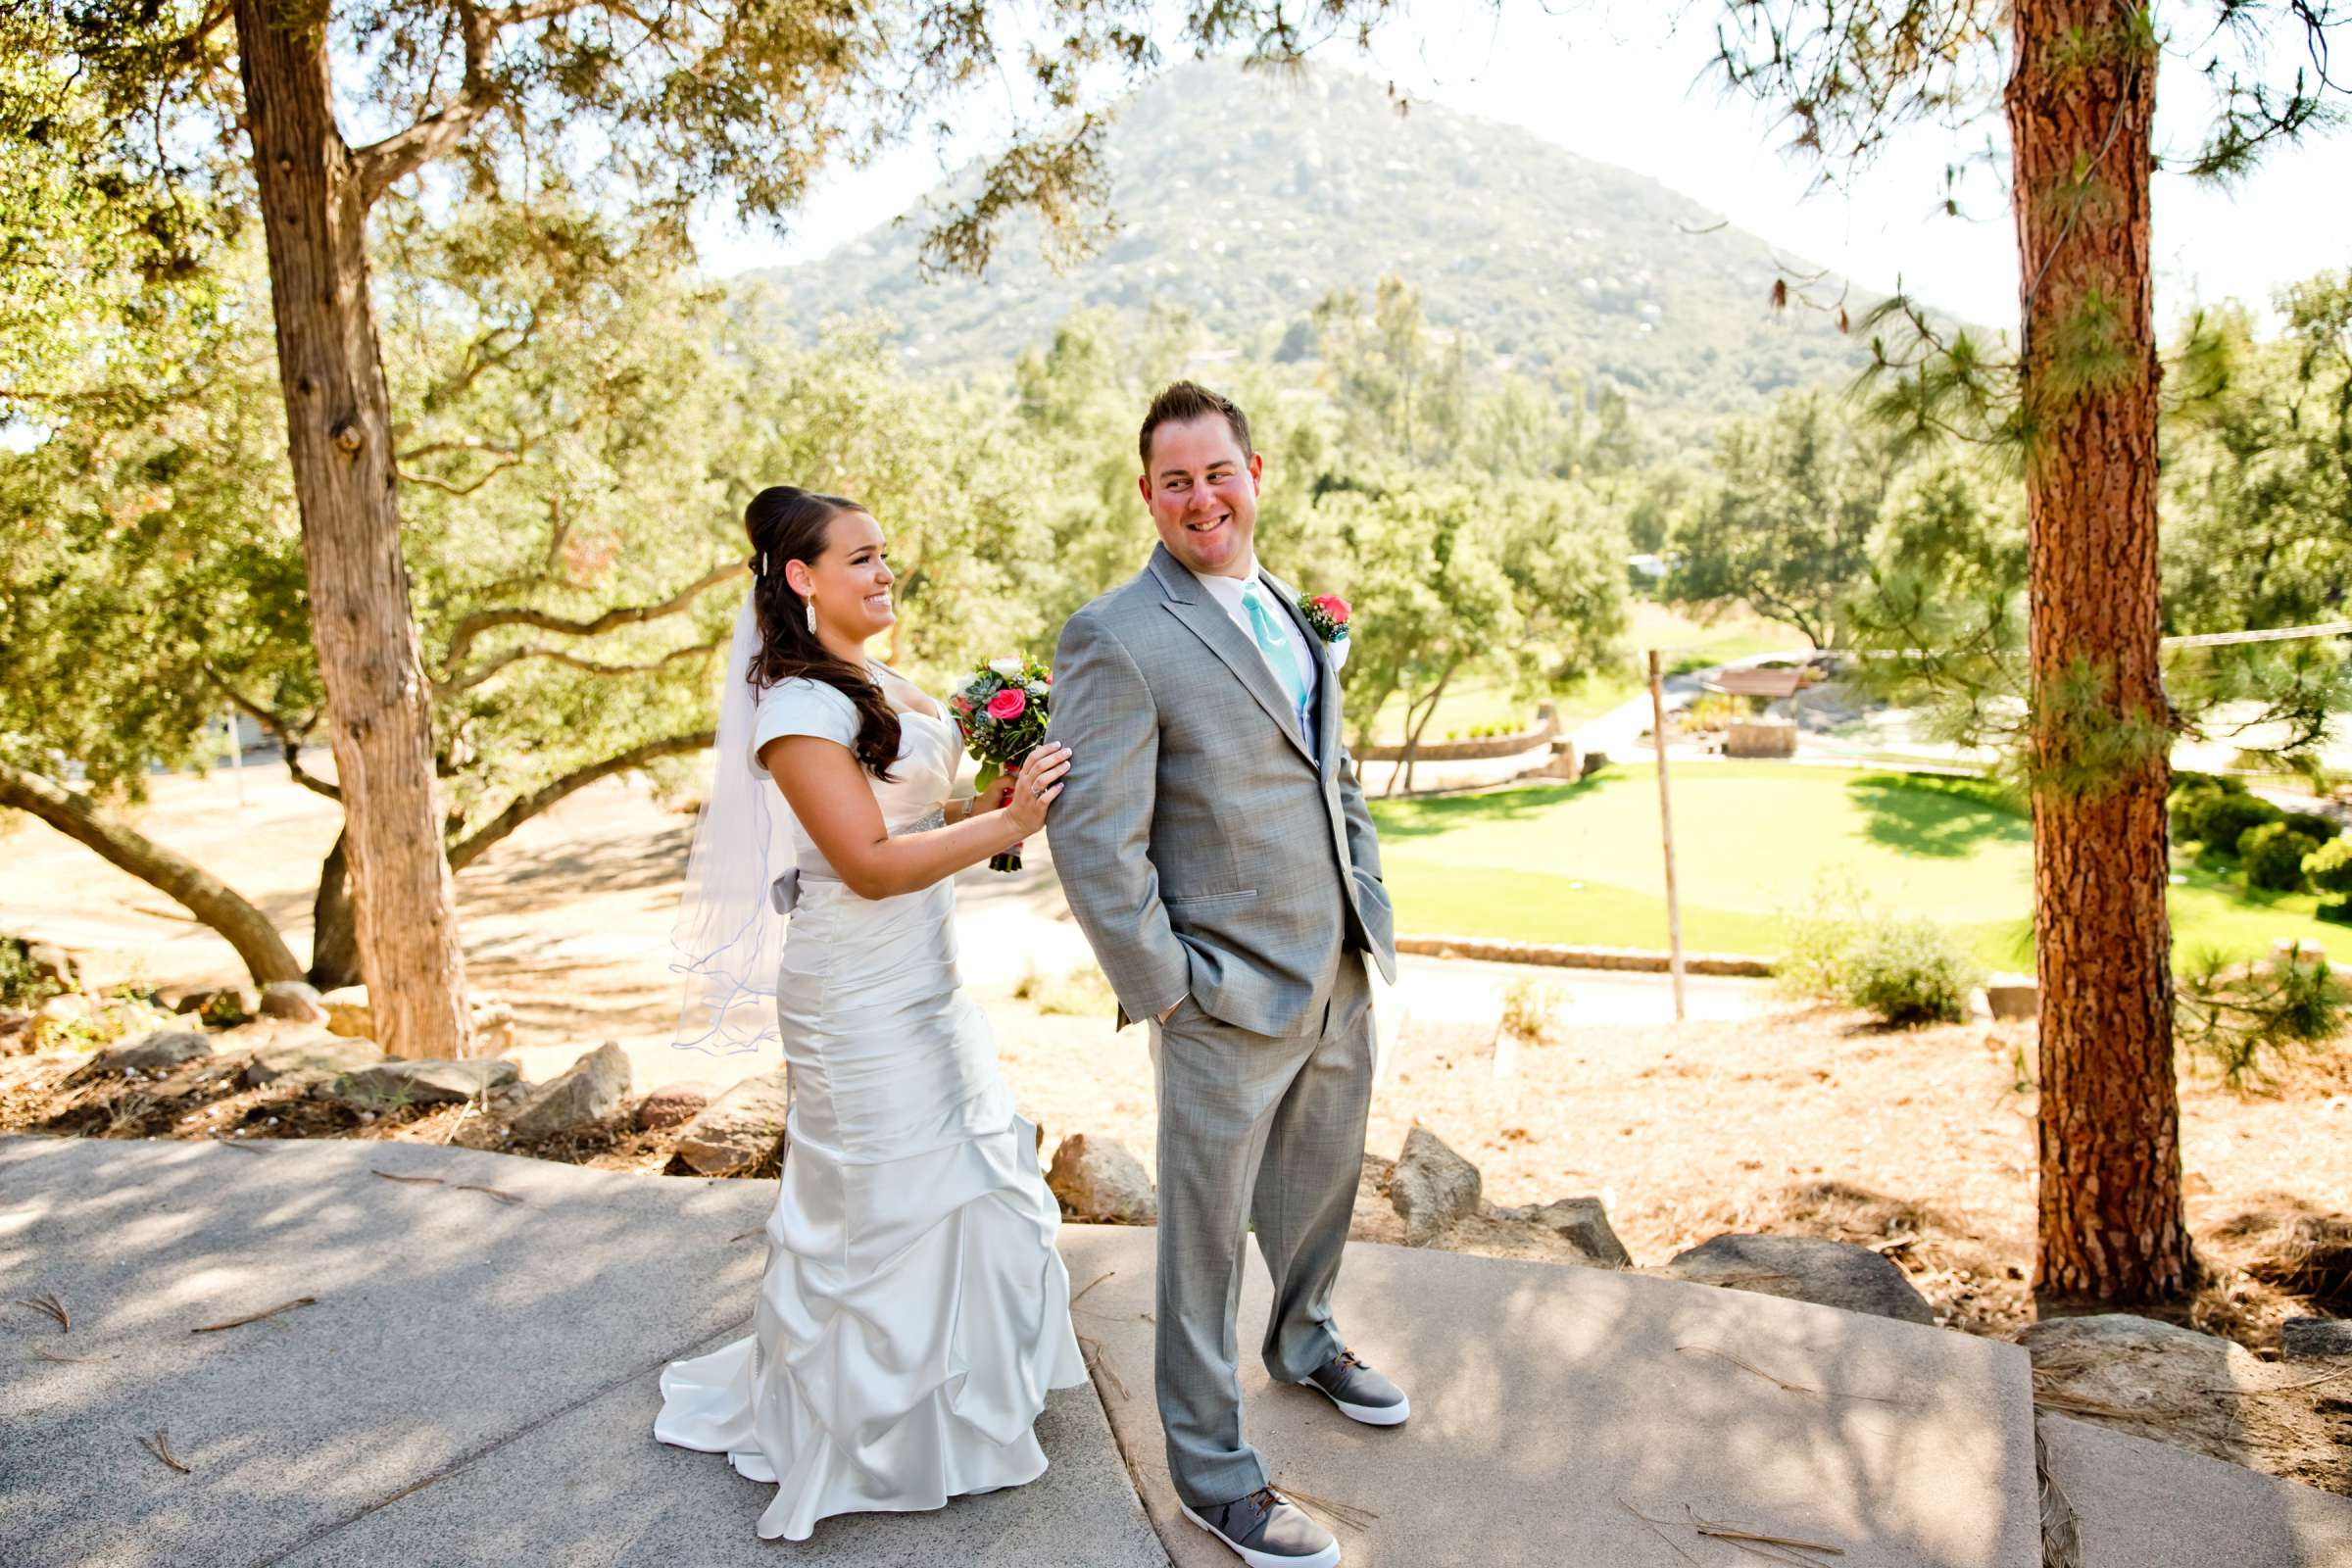 Mt Woodson Castle Wedding, Krista and Donald Wedding Photo #344710 by True Photography